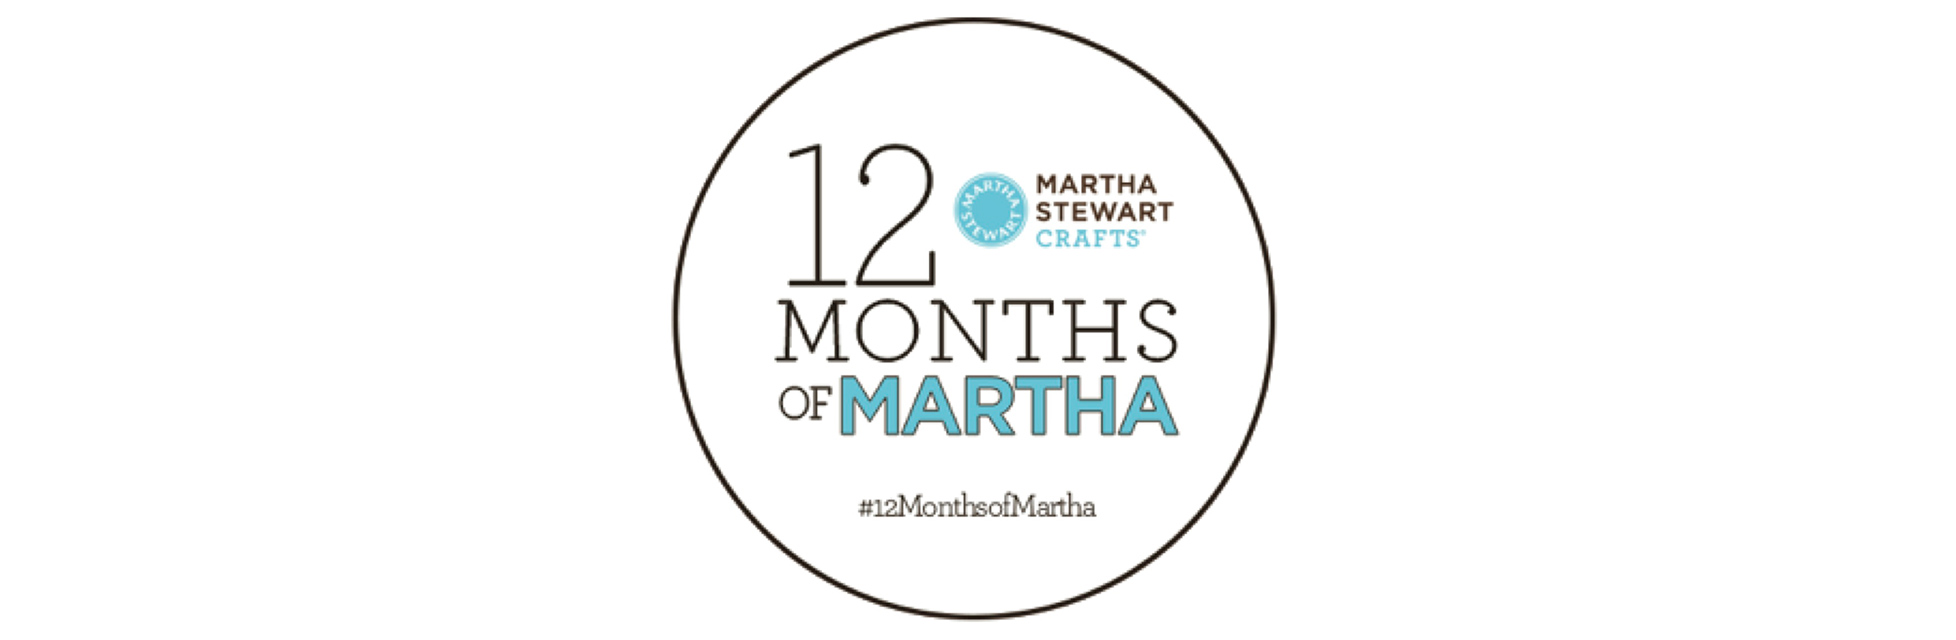 I'm part of the #12MonthsofMartha team! Follow along to see how I use Martha Stewart supplies to make one-of-a-kind DIY projects.